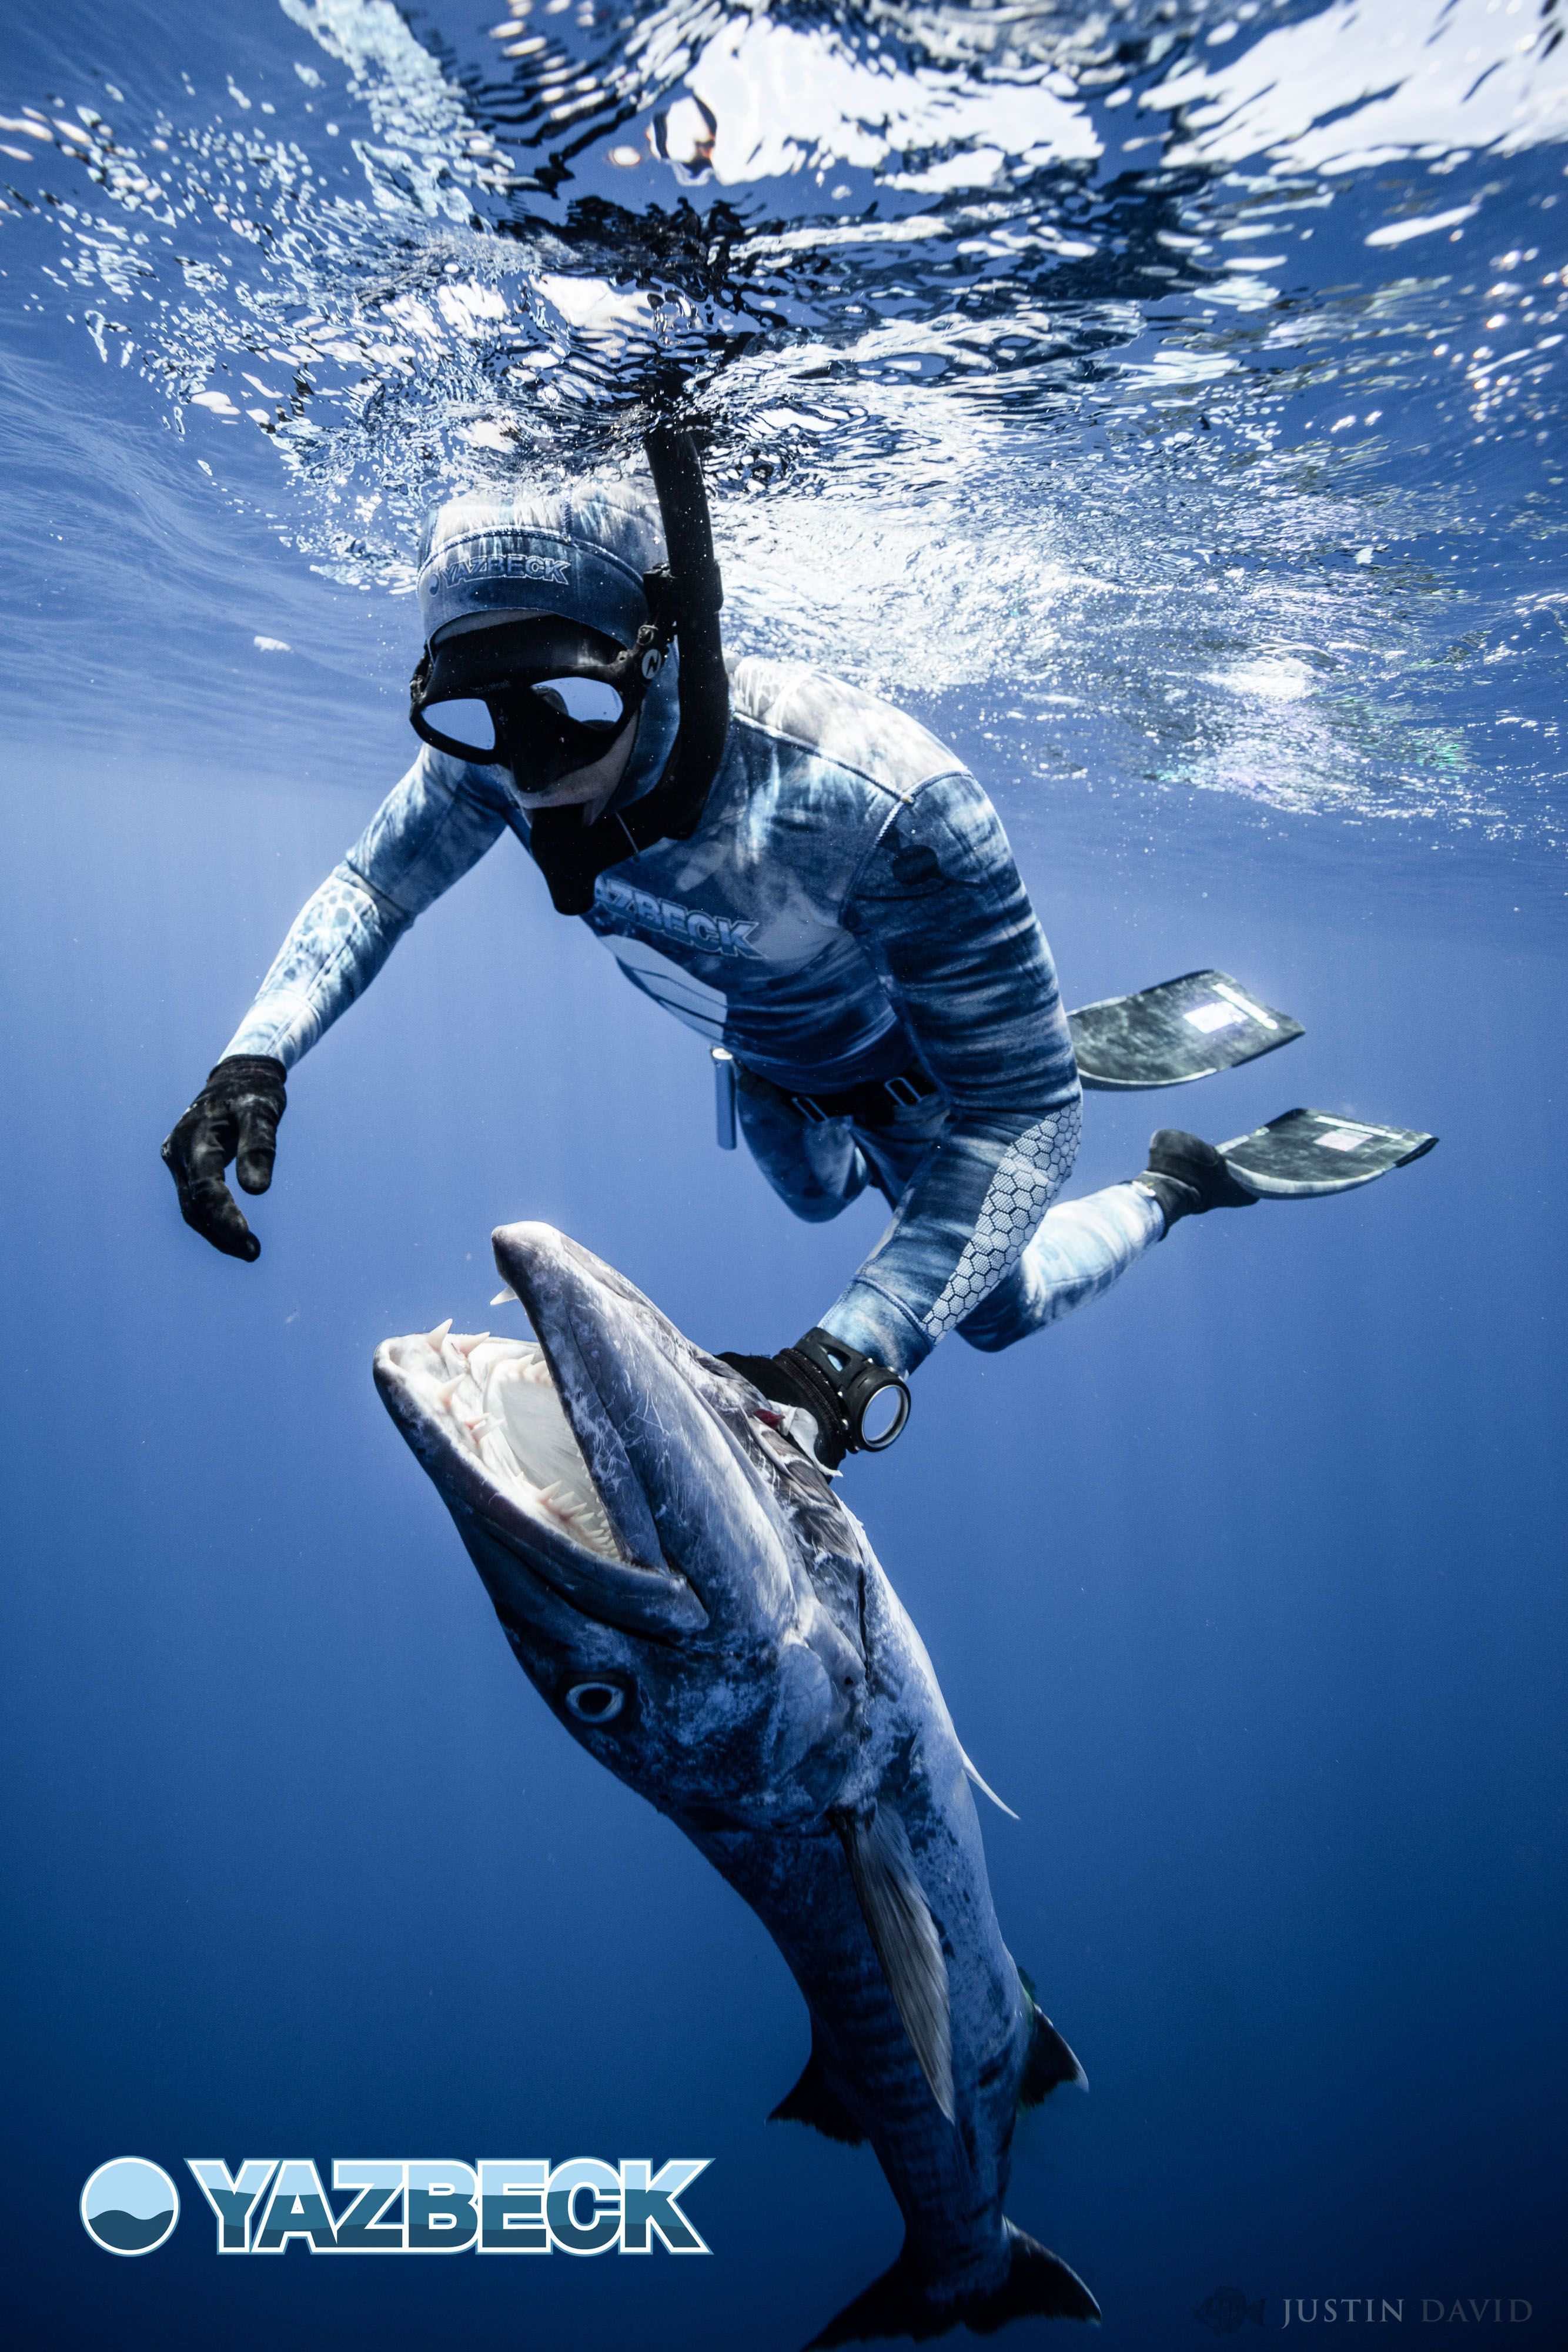 Spearfishing, Wetsuits, Diving